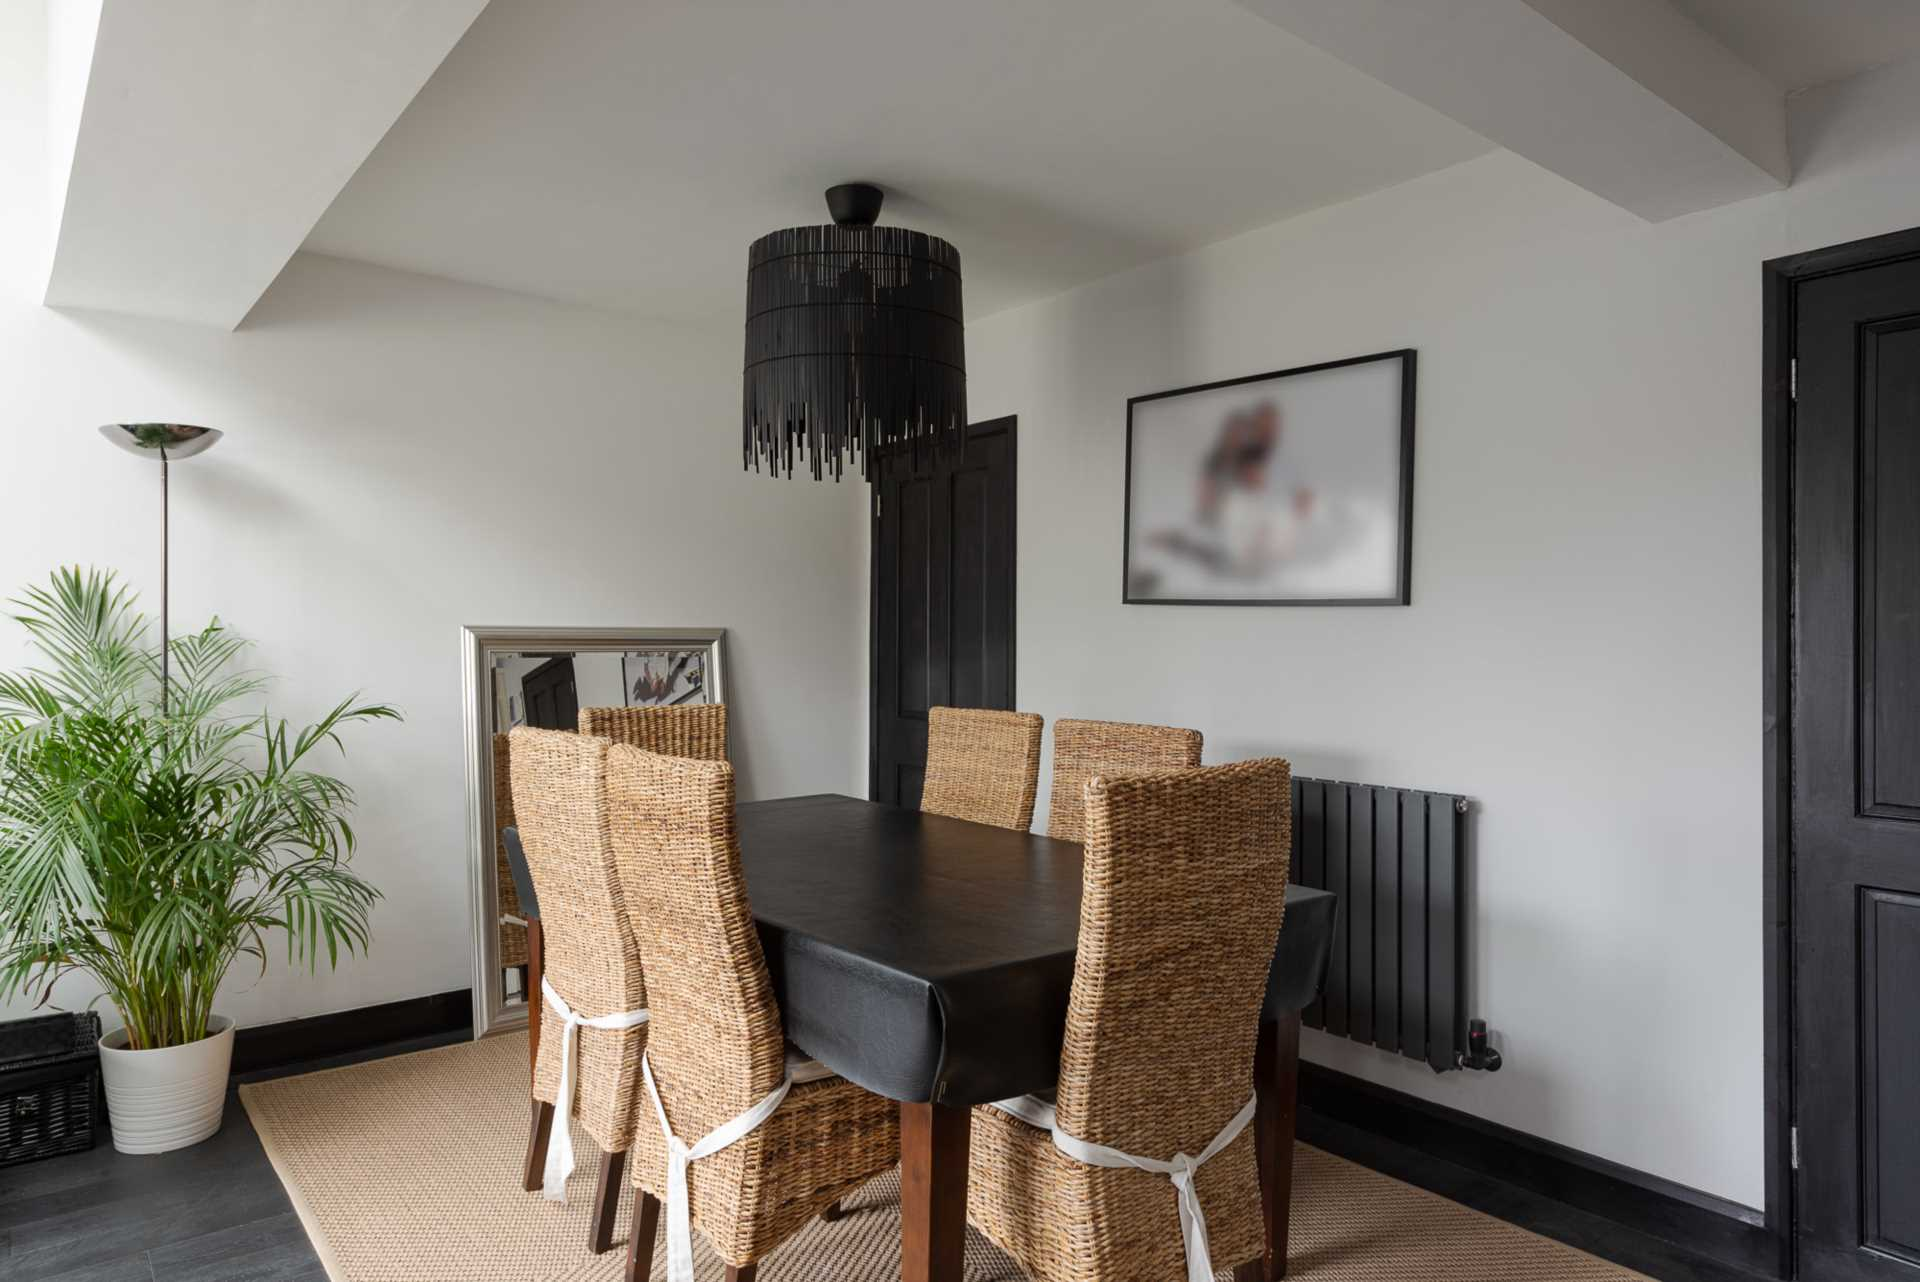 Anchorway Road, Coventry, Image 4